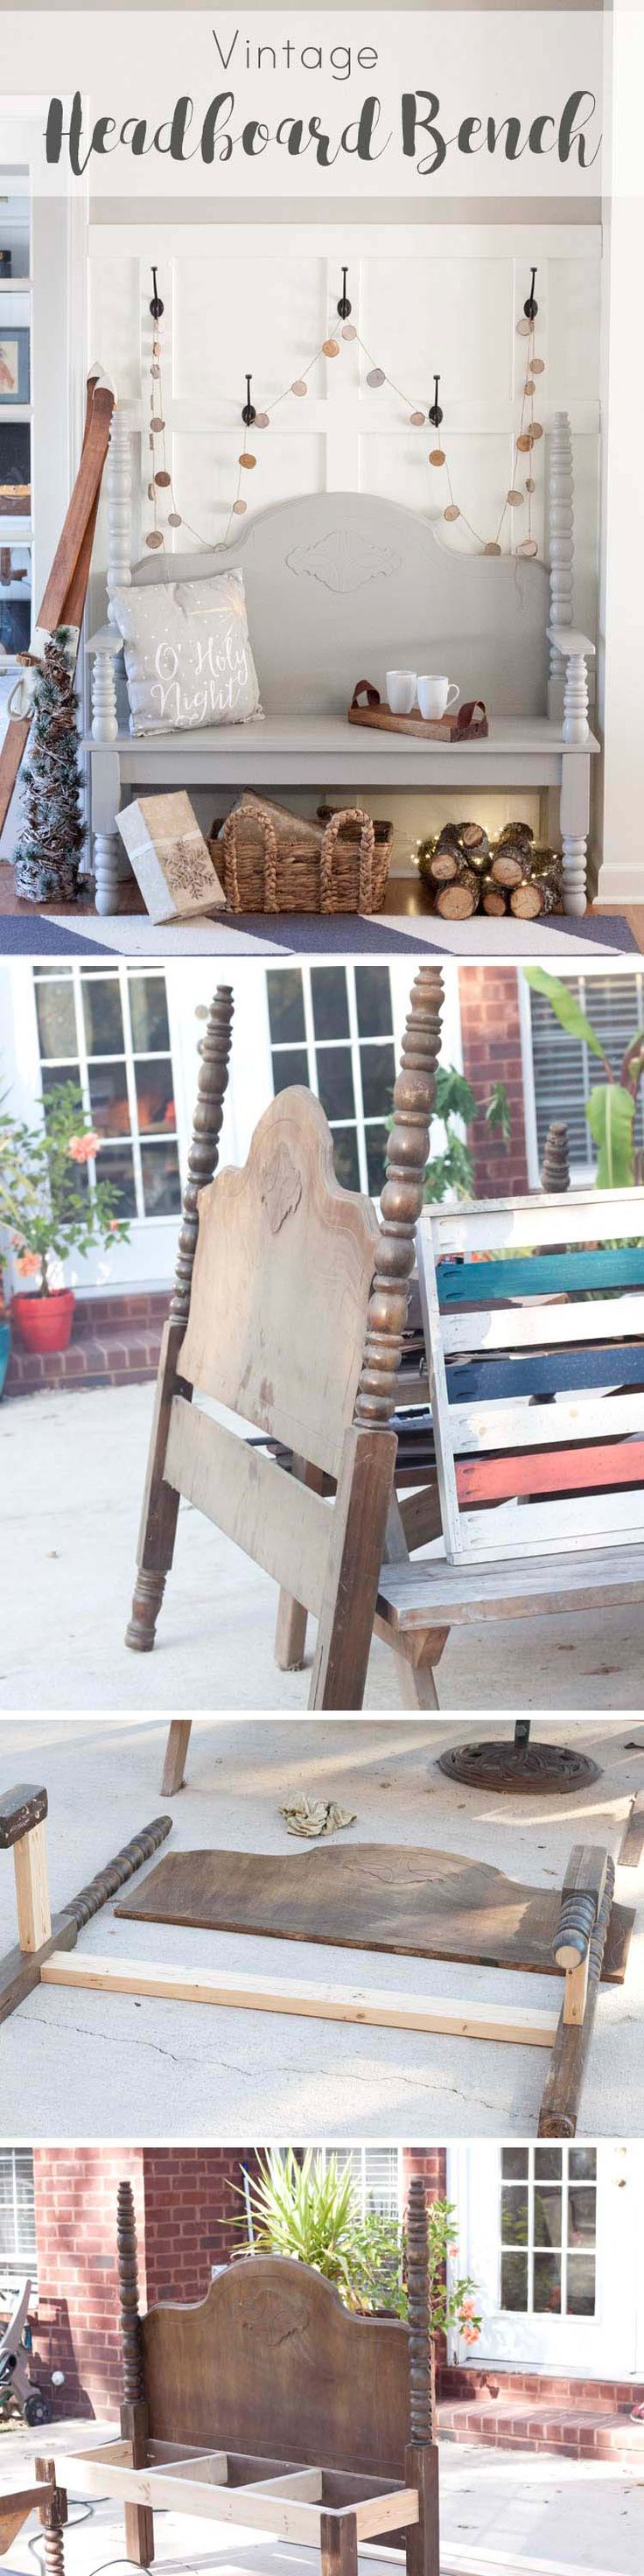 Headboard Bench Plans Best 25 Headboard Benches Ideas On Pinterest Benches From